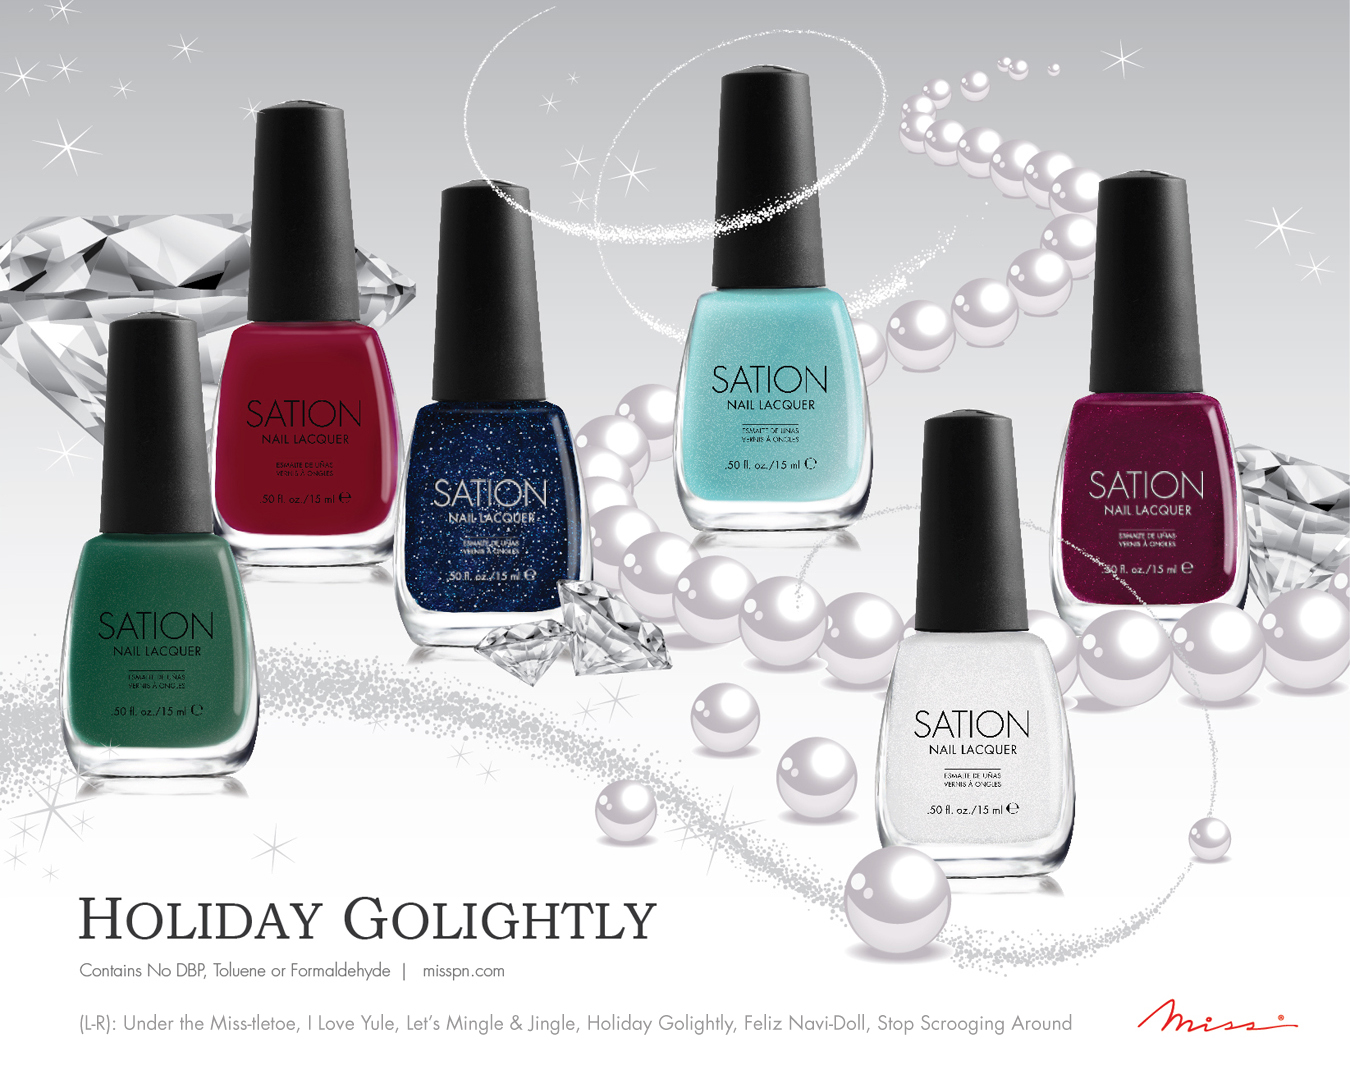 Sation - Holiday Golightly Collection